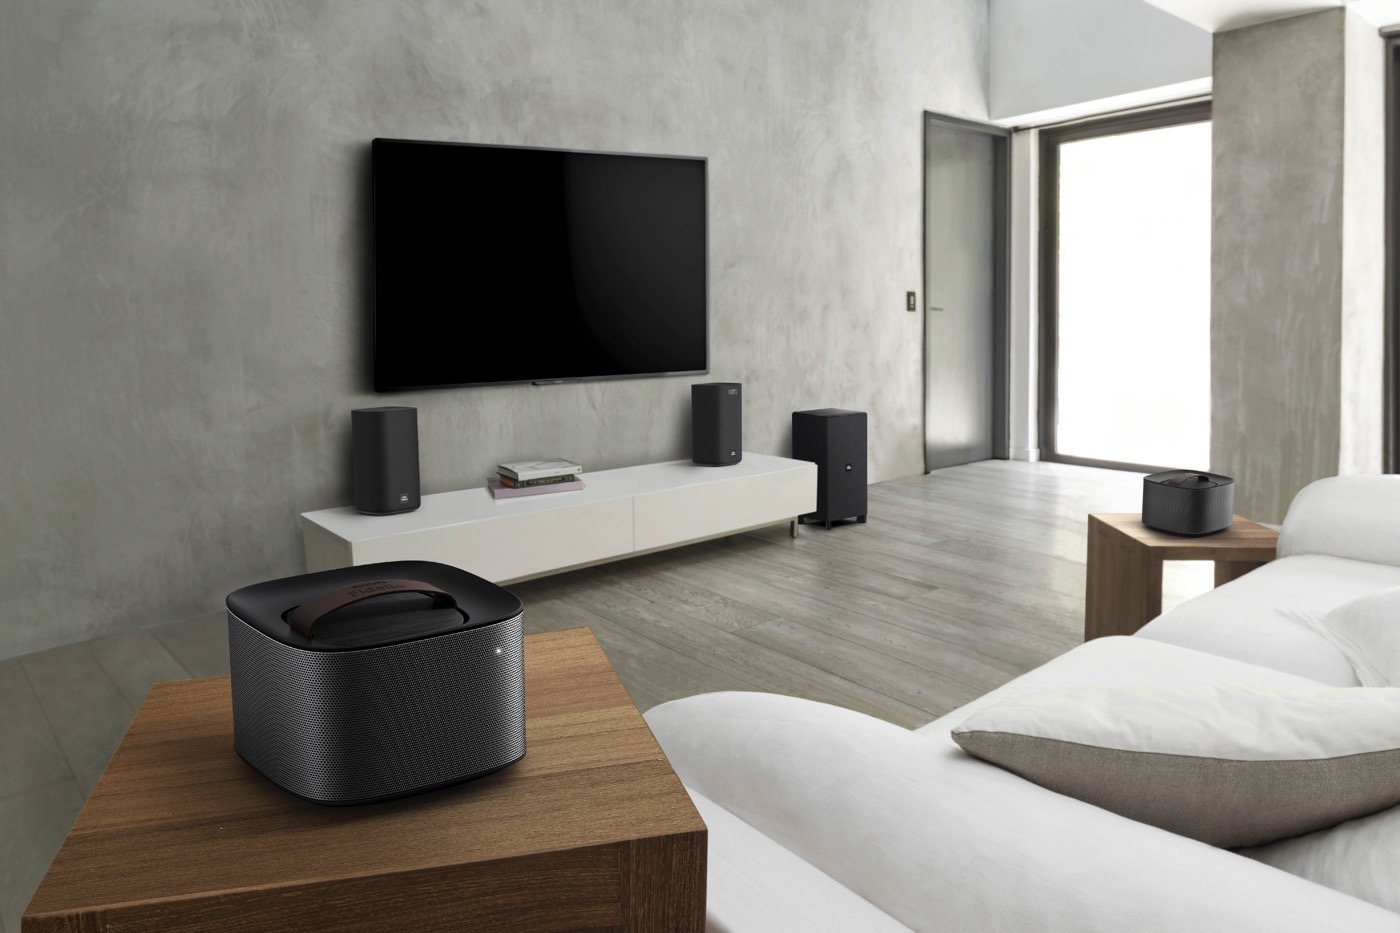 philips 39 living room audio gear includes 39 detachable 39 speakers